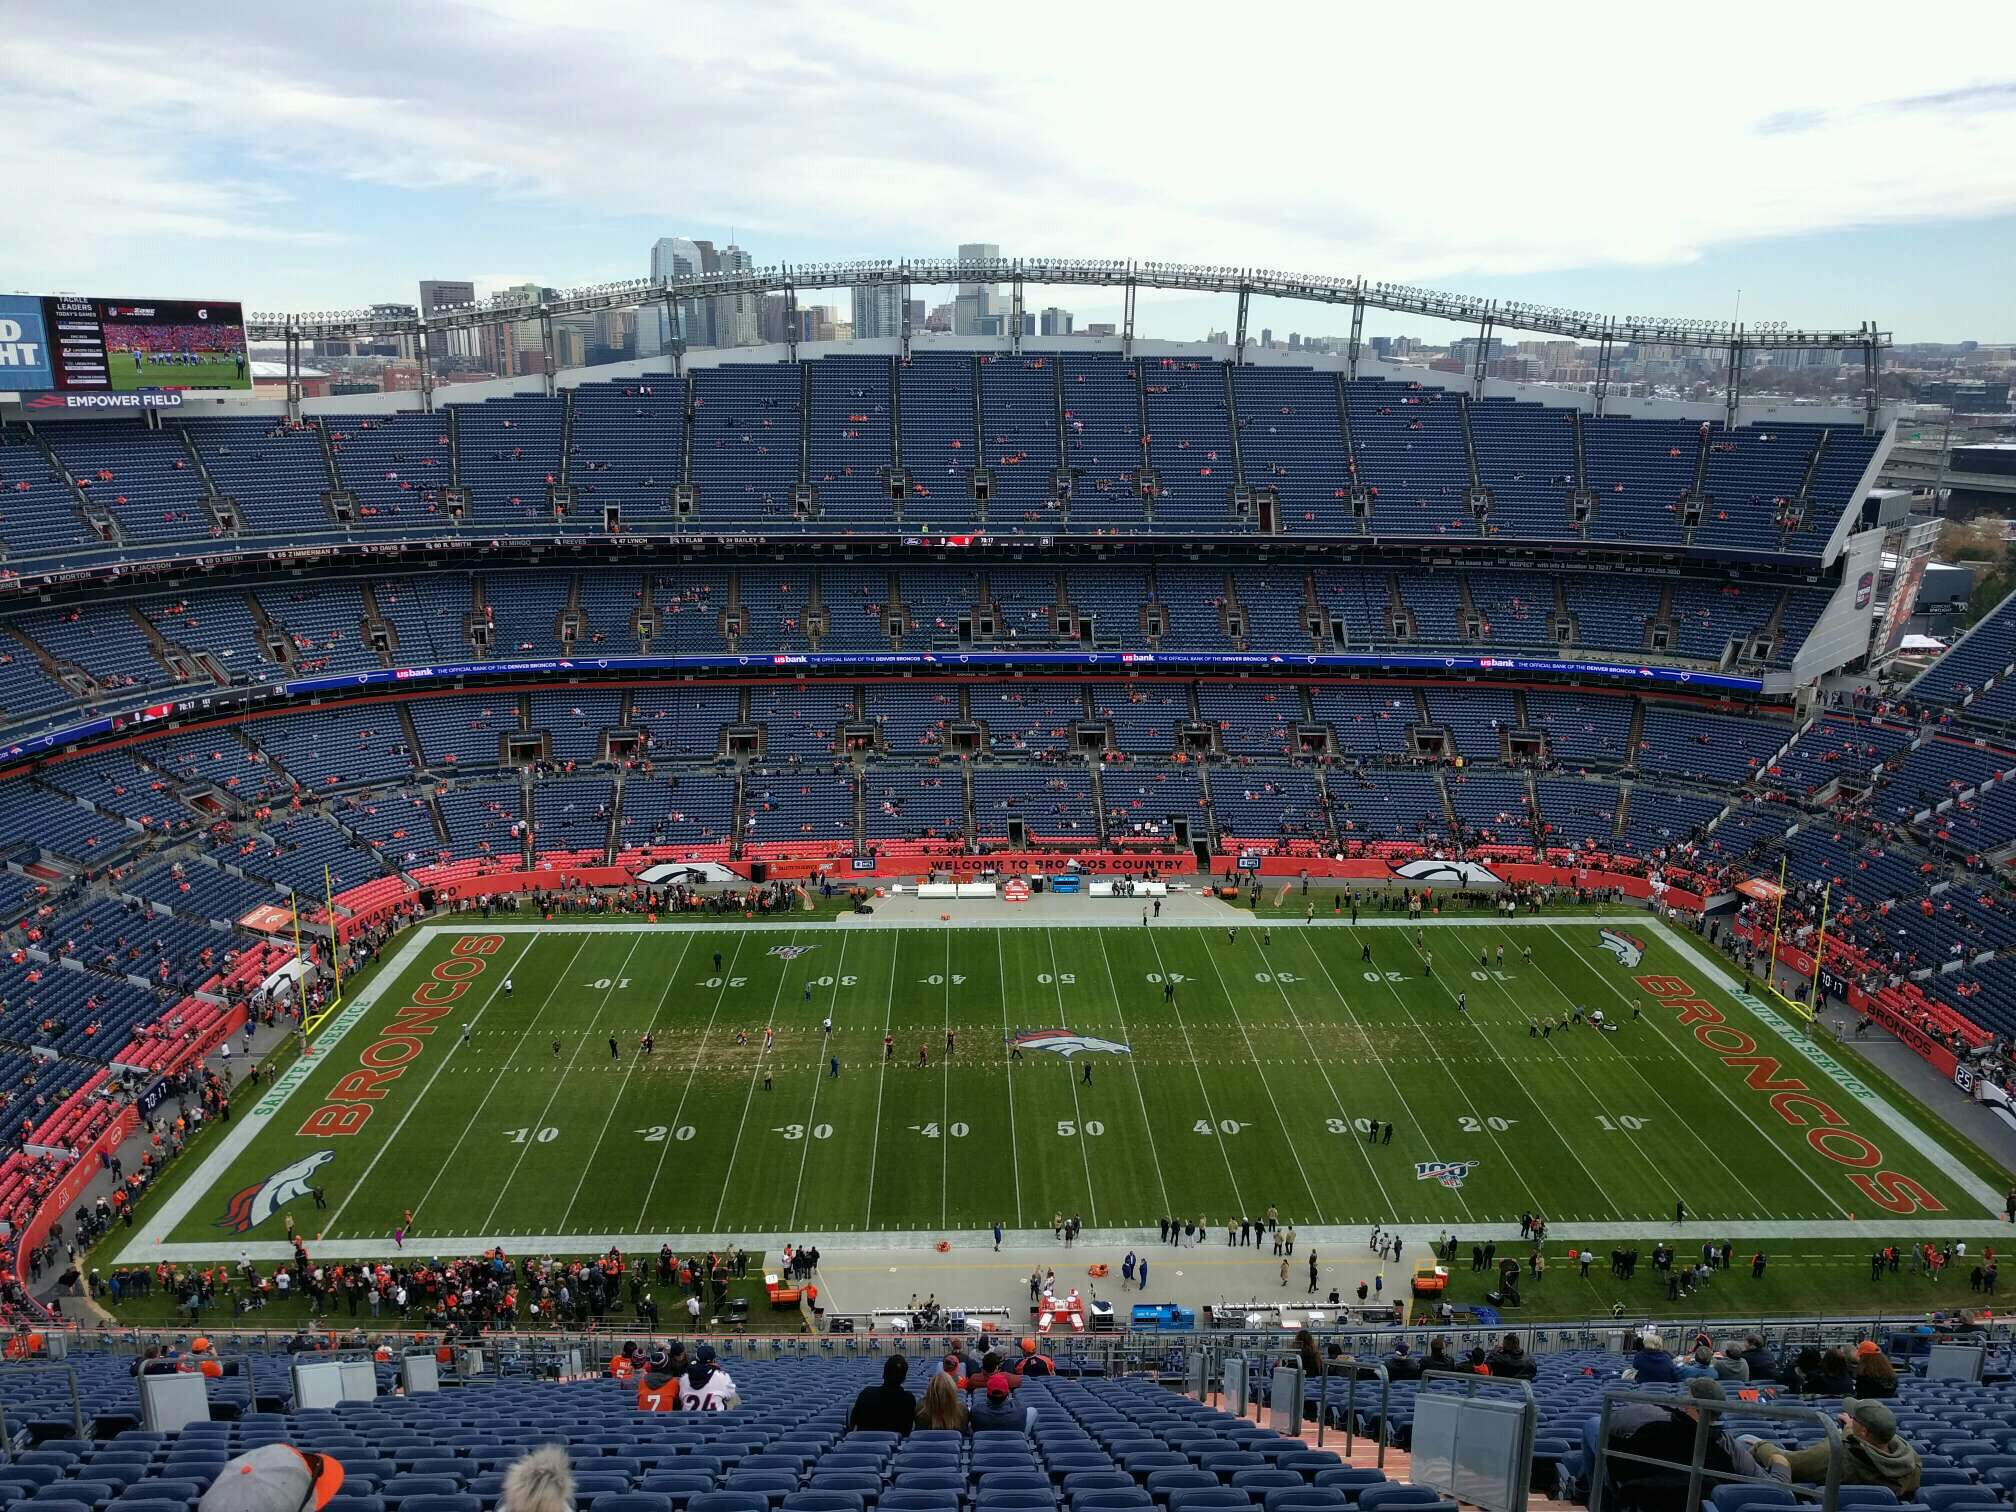 Empower Field at Mile High Stadium Section 509 Rangée 35 Siège 5